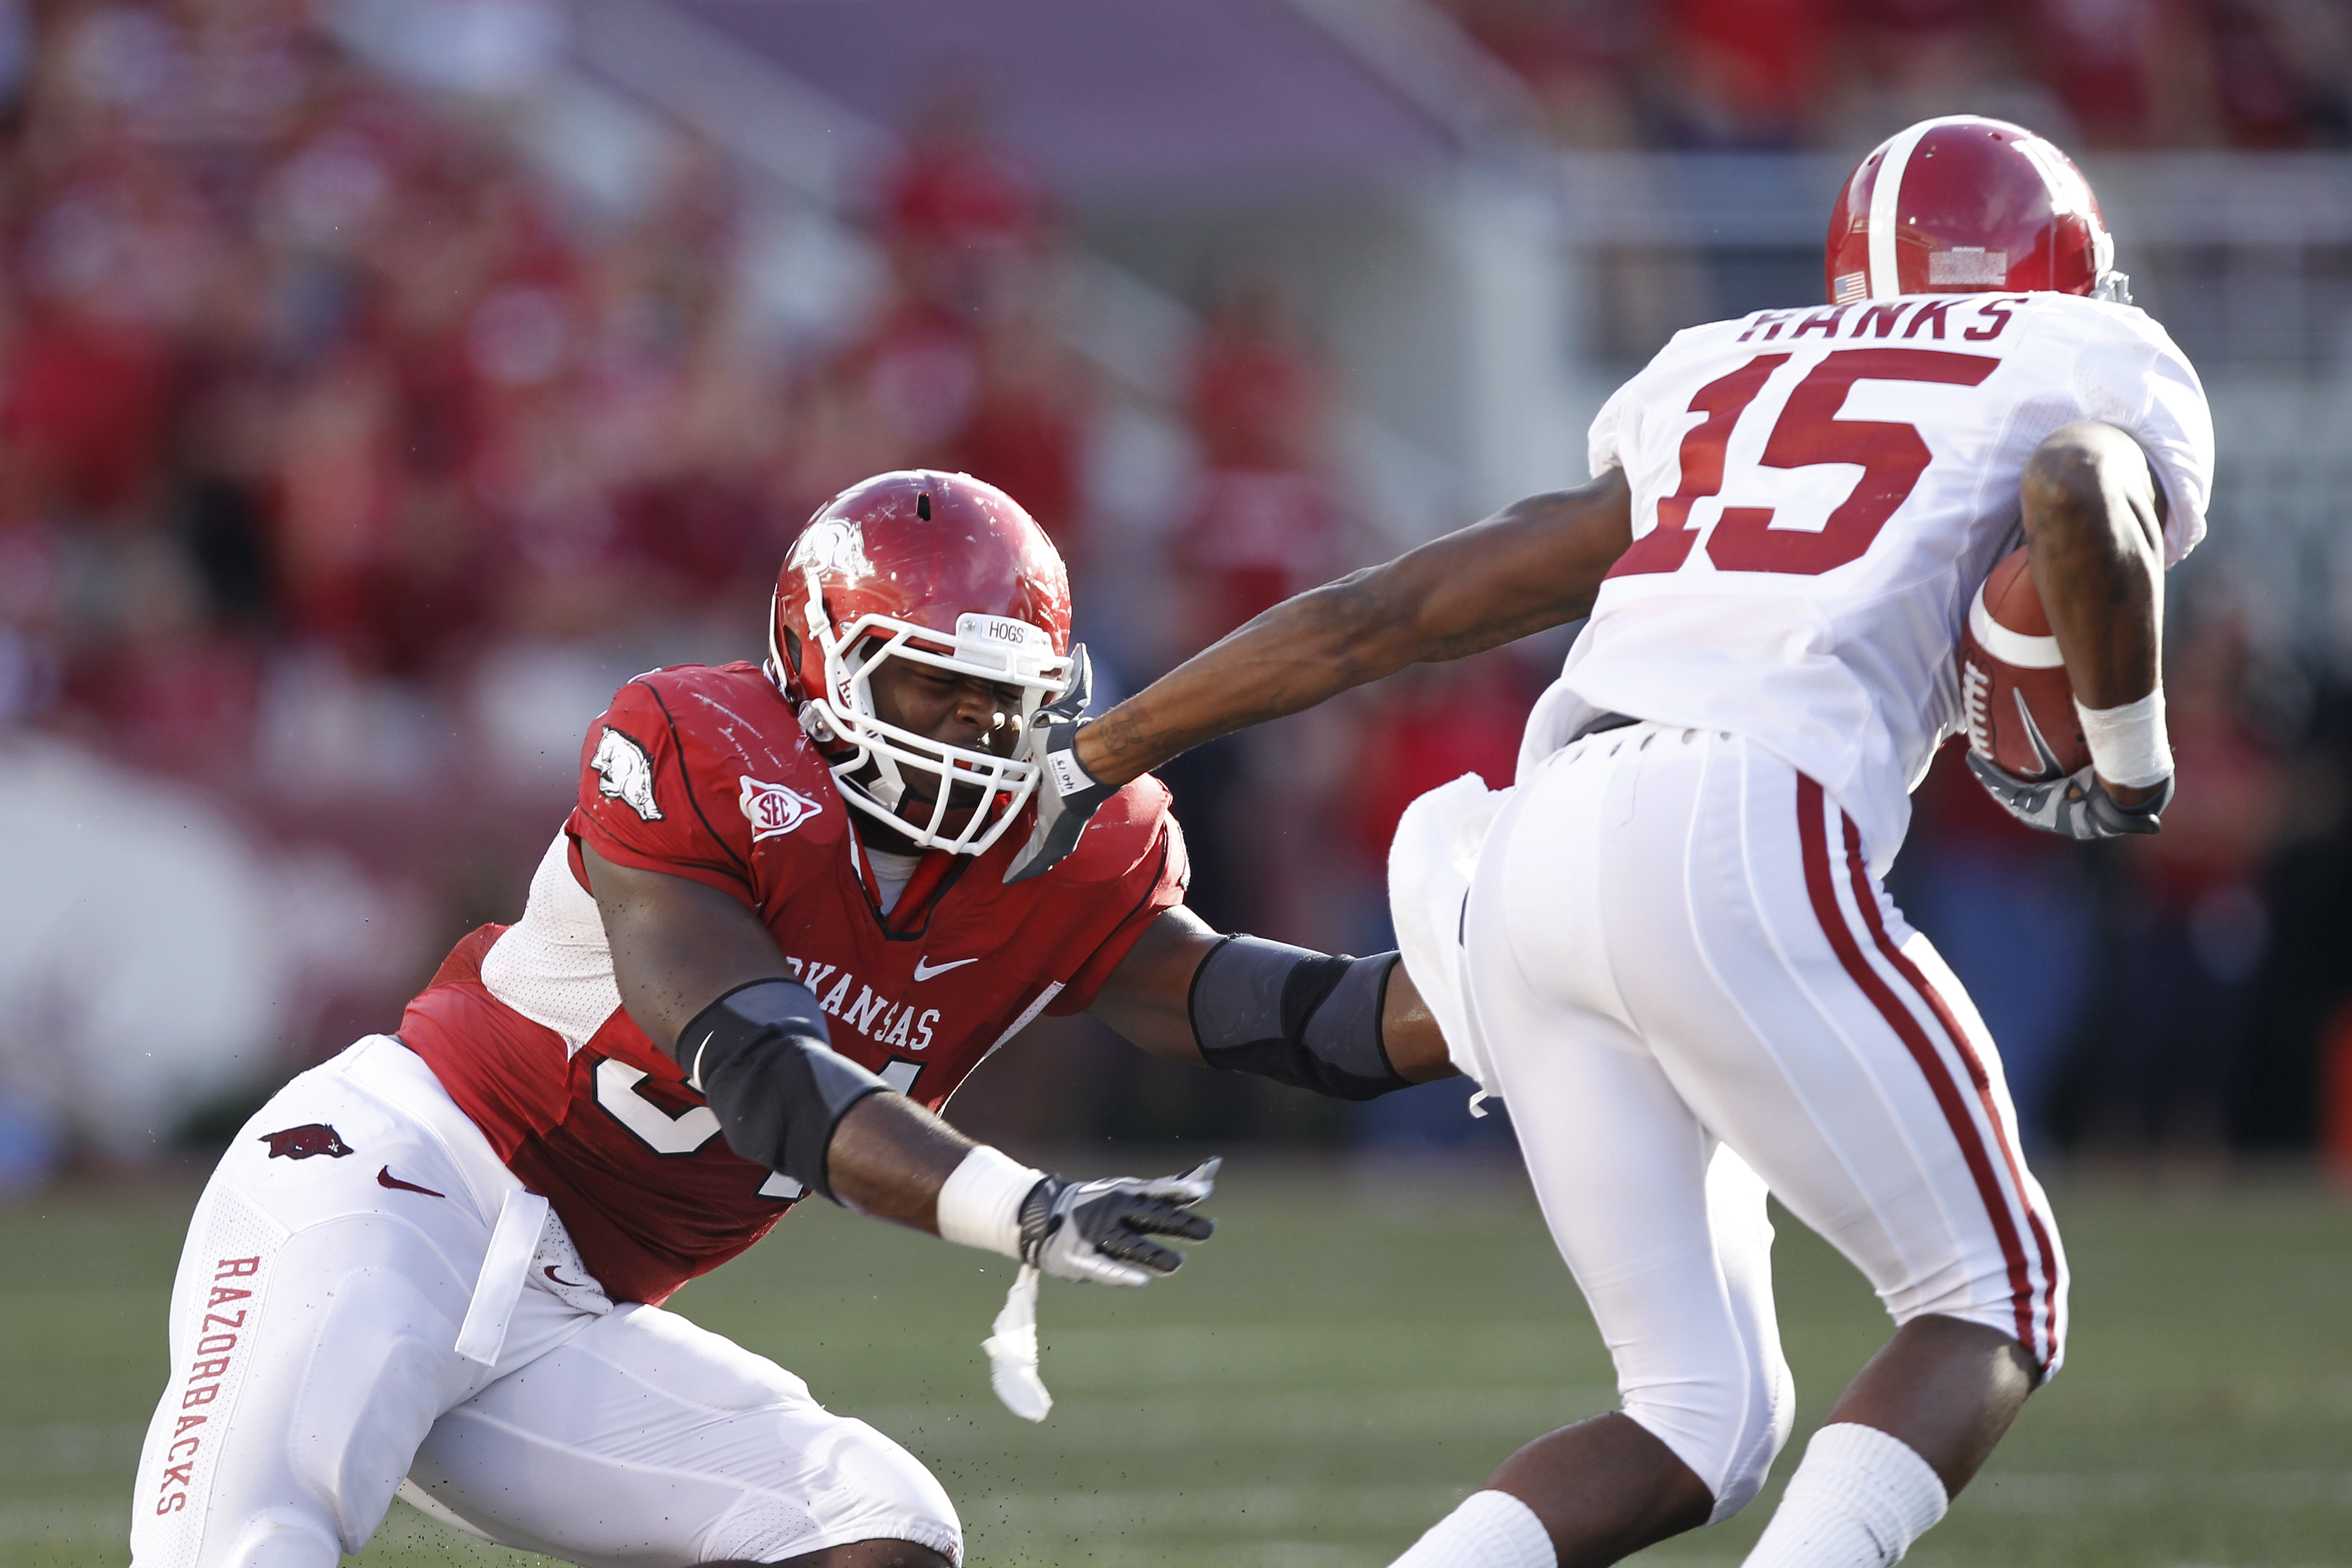 FAYETTEVILLE - SEPTEMBER 25: Darius Hanks #15 of the Alabama Crimson Tide tries to get around a tackle attempt by Jerry Franklin #34 of the Arkansas Razorbacks at Donald W. Reynolds Razorback Stadium on September 25, 2010 in Fayetteville, Arkansas. Alabam